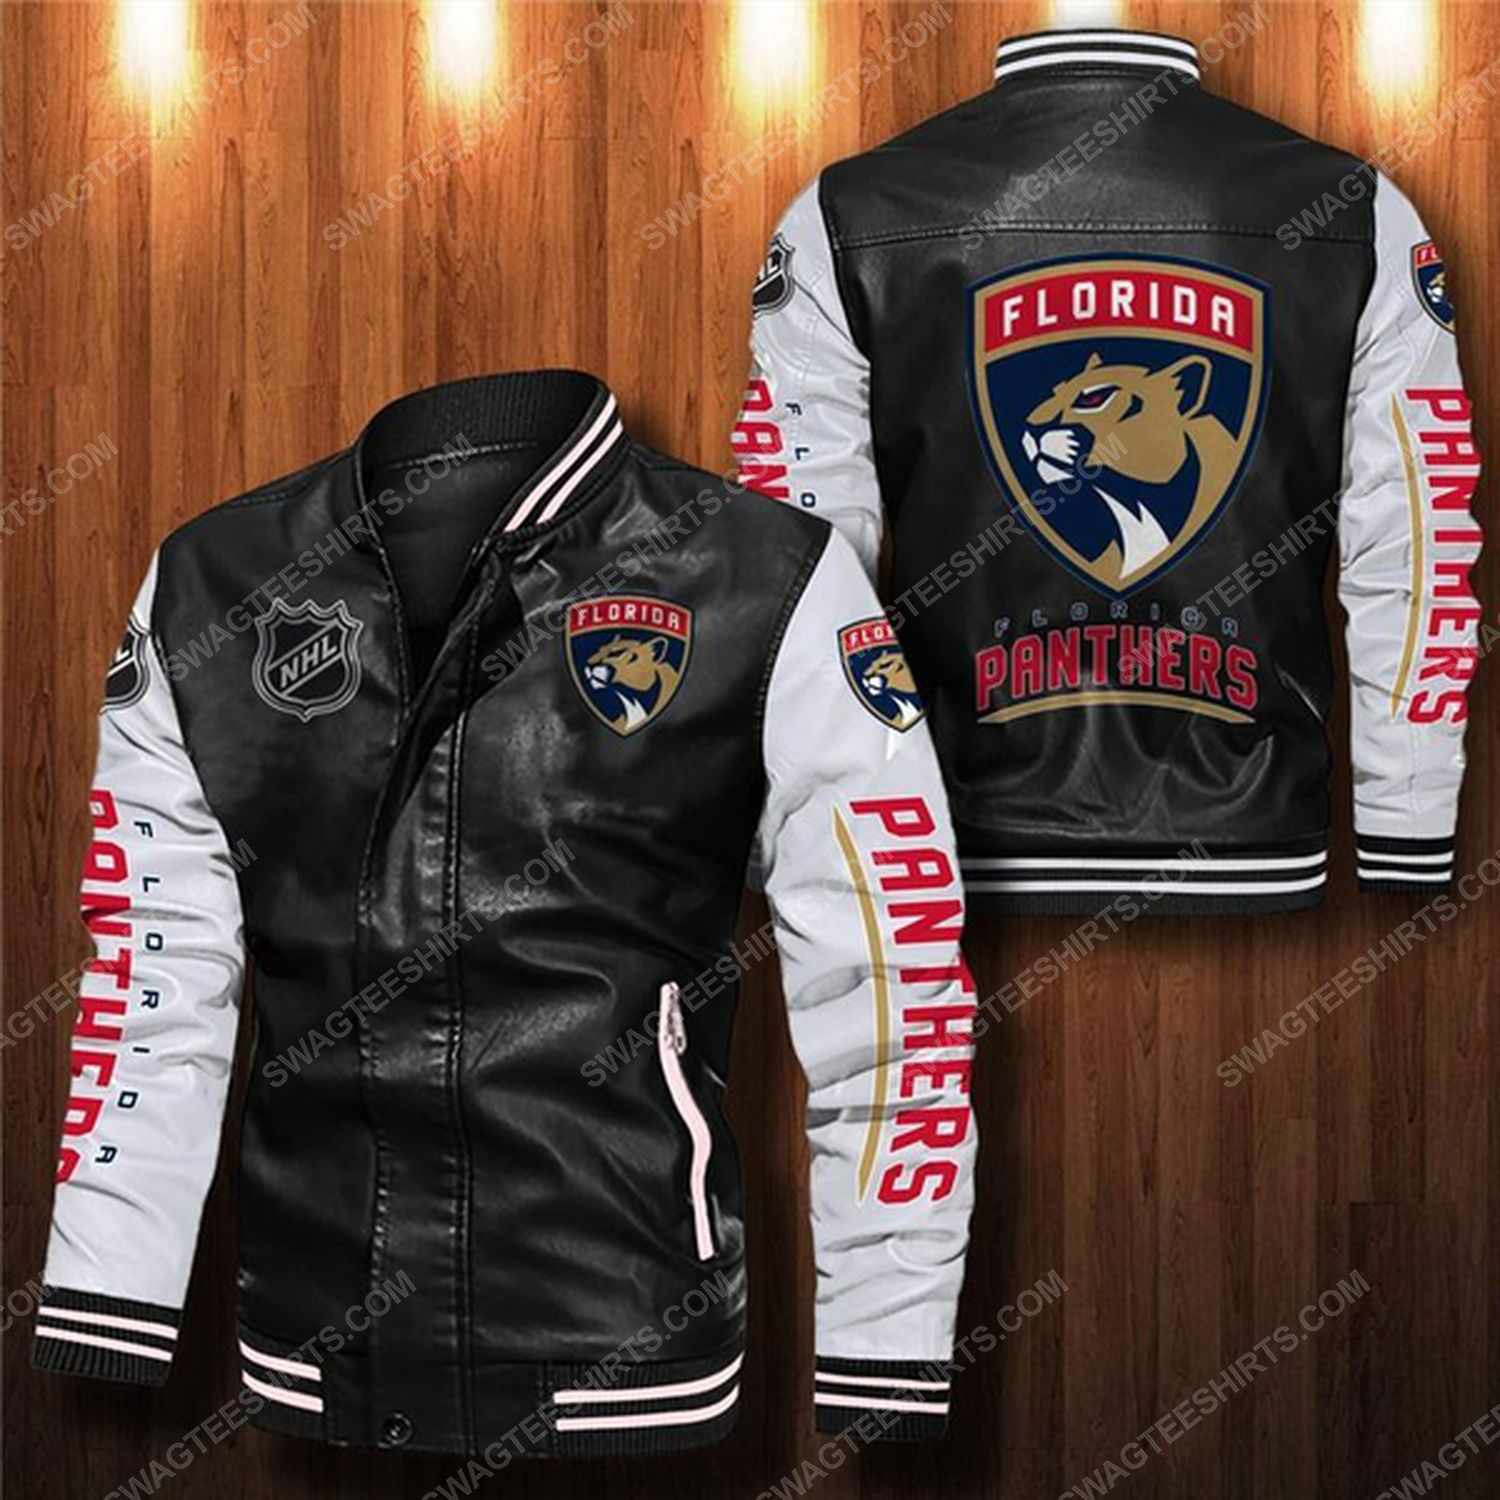 Florida panthers all over print leather bomber jacket - white